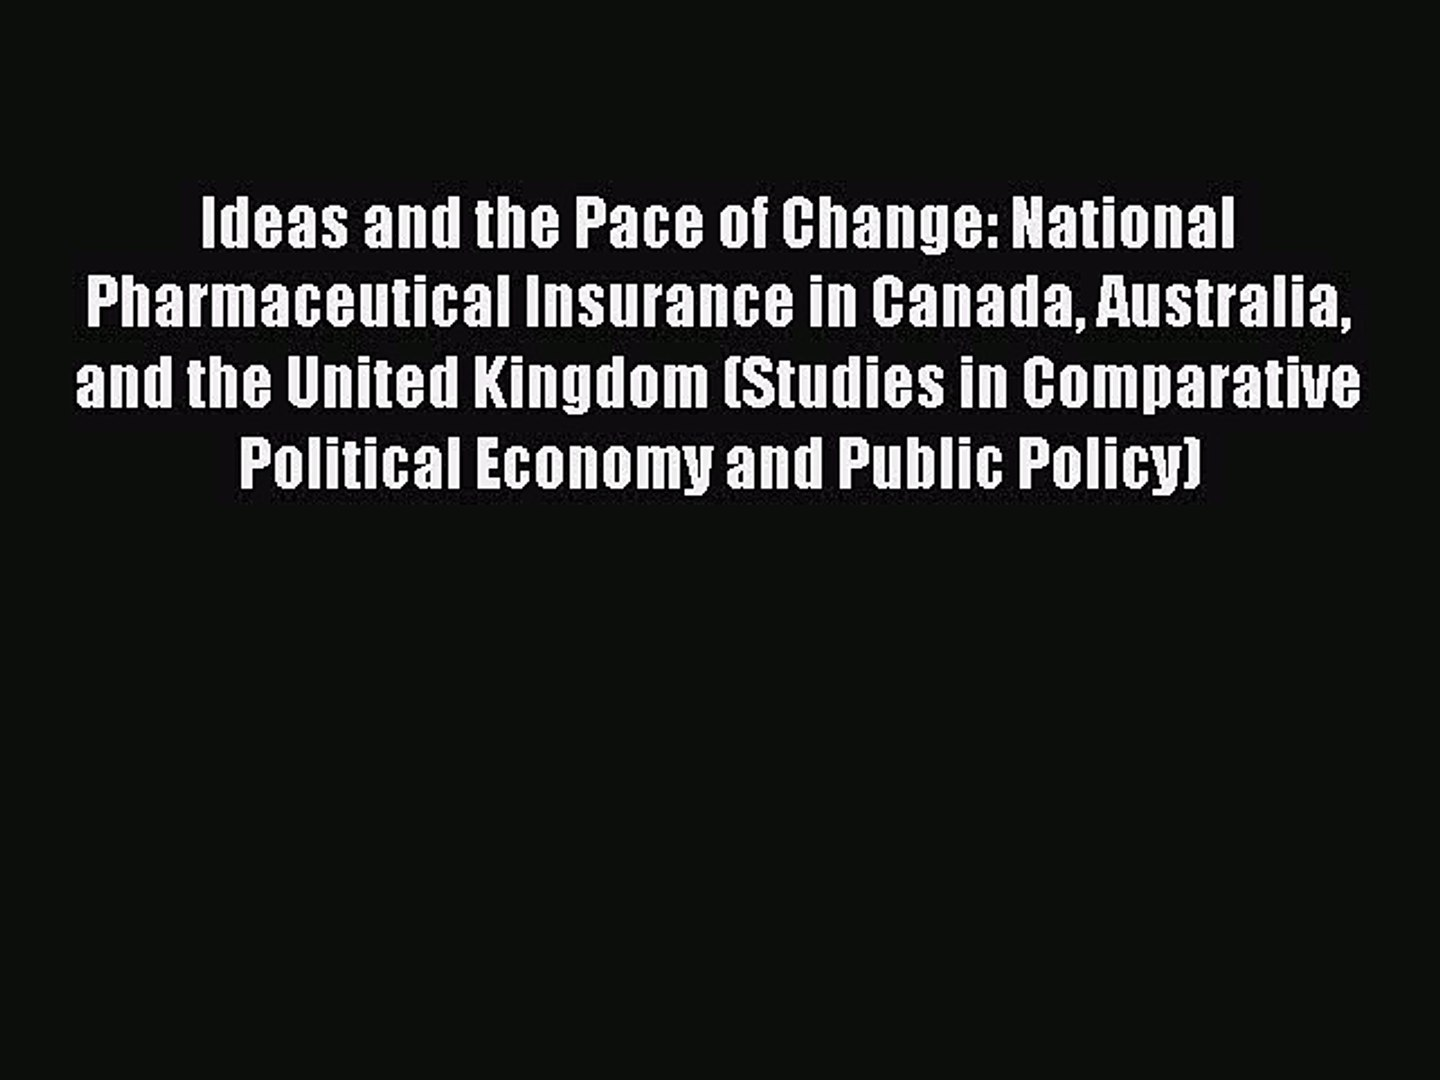 Read Ideas and the Pace of Change: National Pharmaceutical Insurance in Canada Australia and